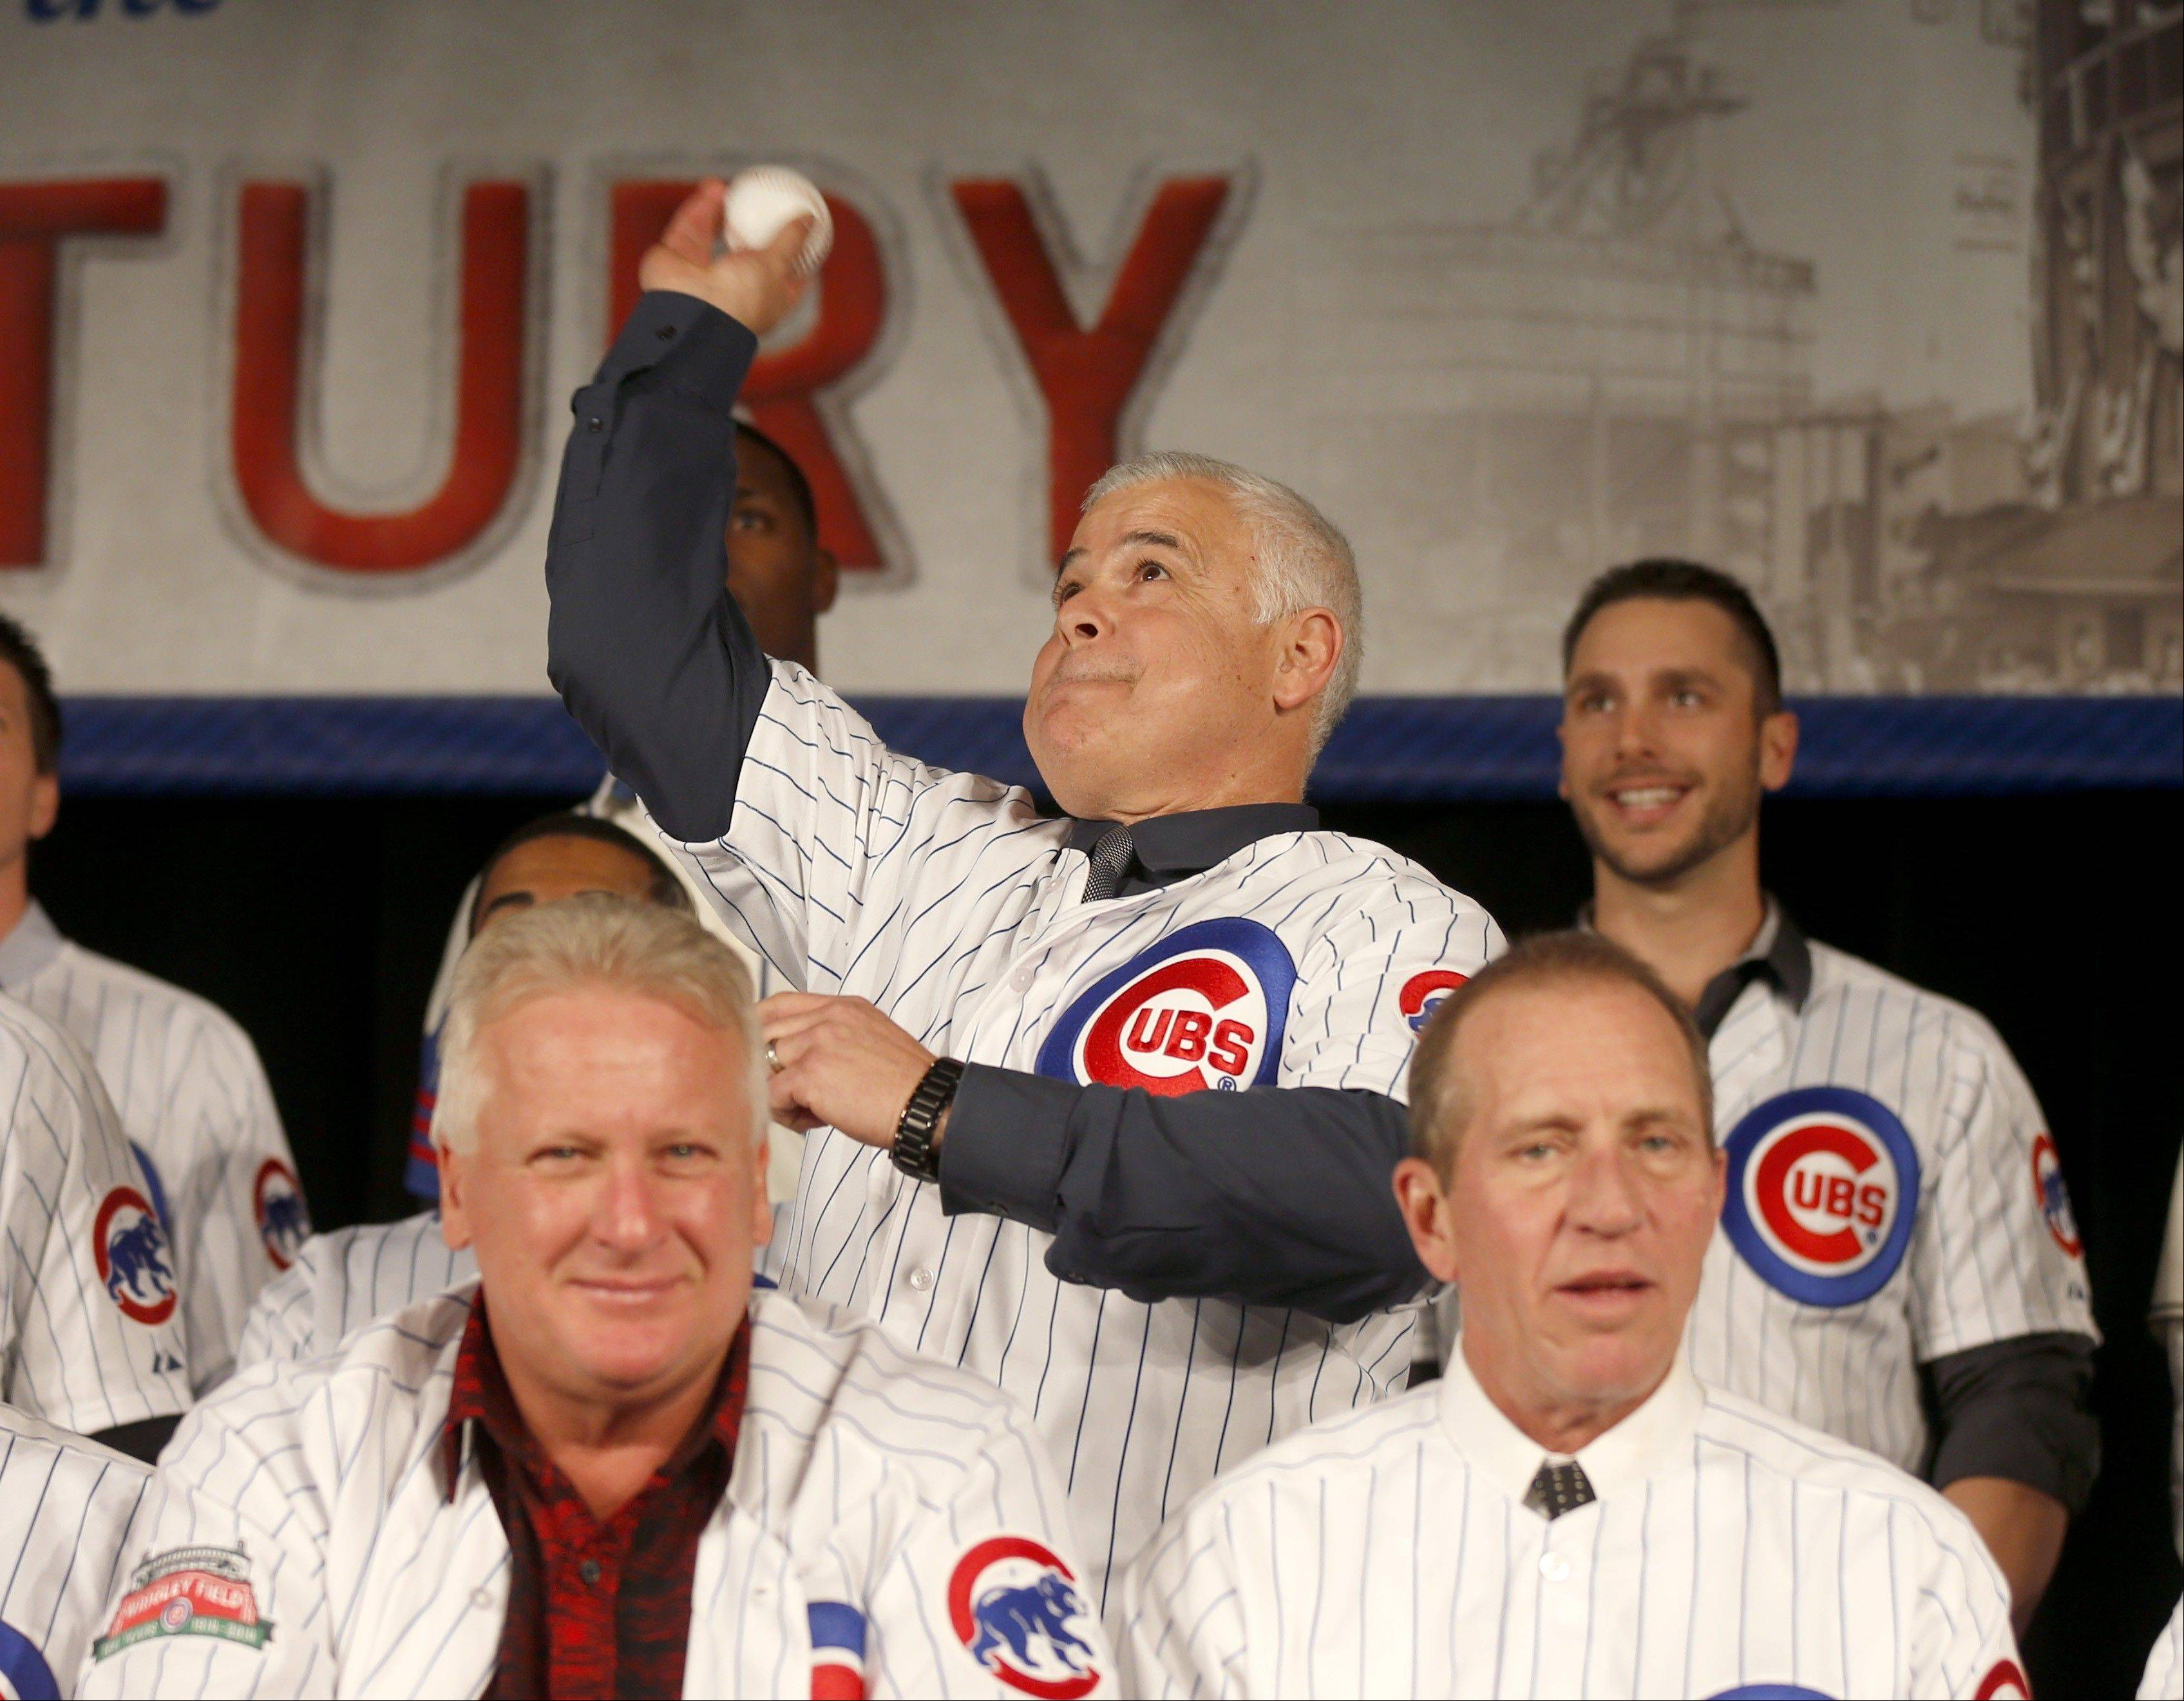 New Cubs manager Rick Renteria throws out a ceremonial first pitch Friday to open the Cubs Convention in Chicago.